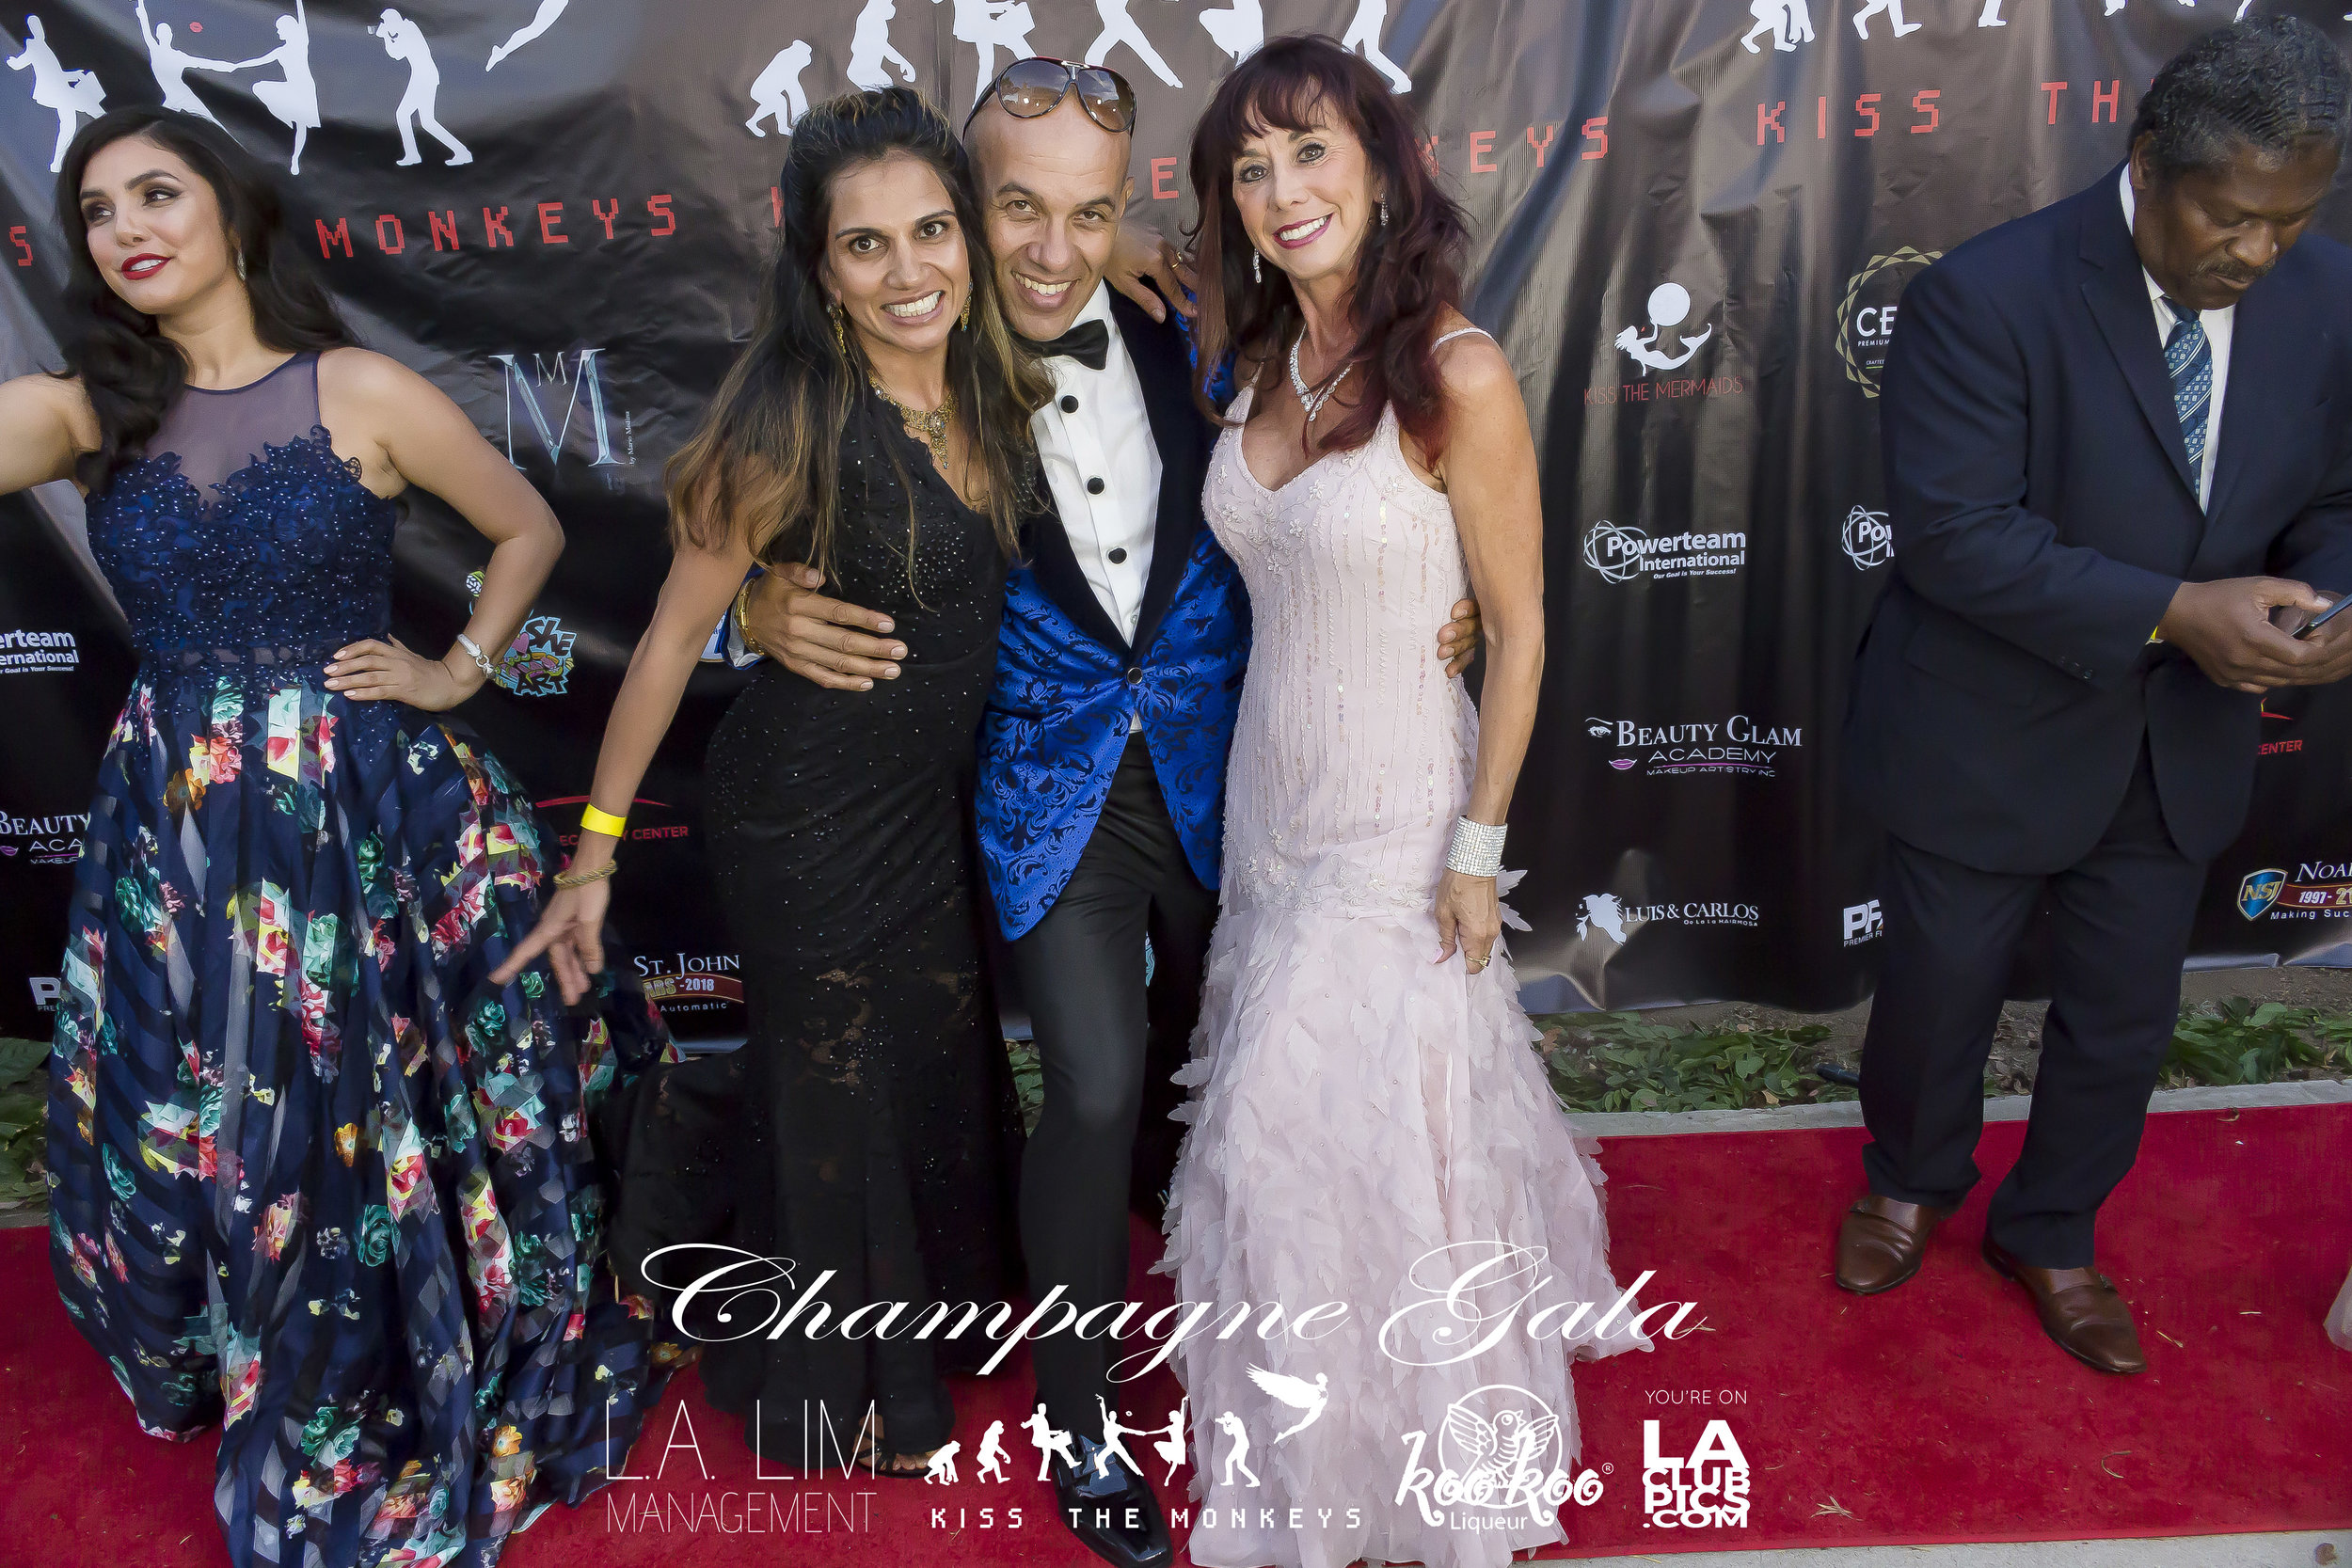 Kiss The Monkeys - Champagne Gala - 07-21-18_142.jpg